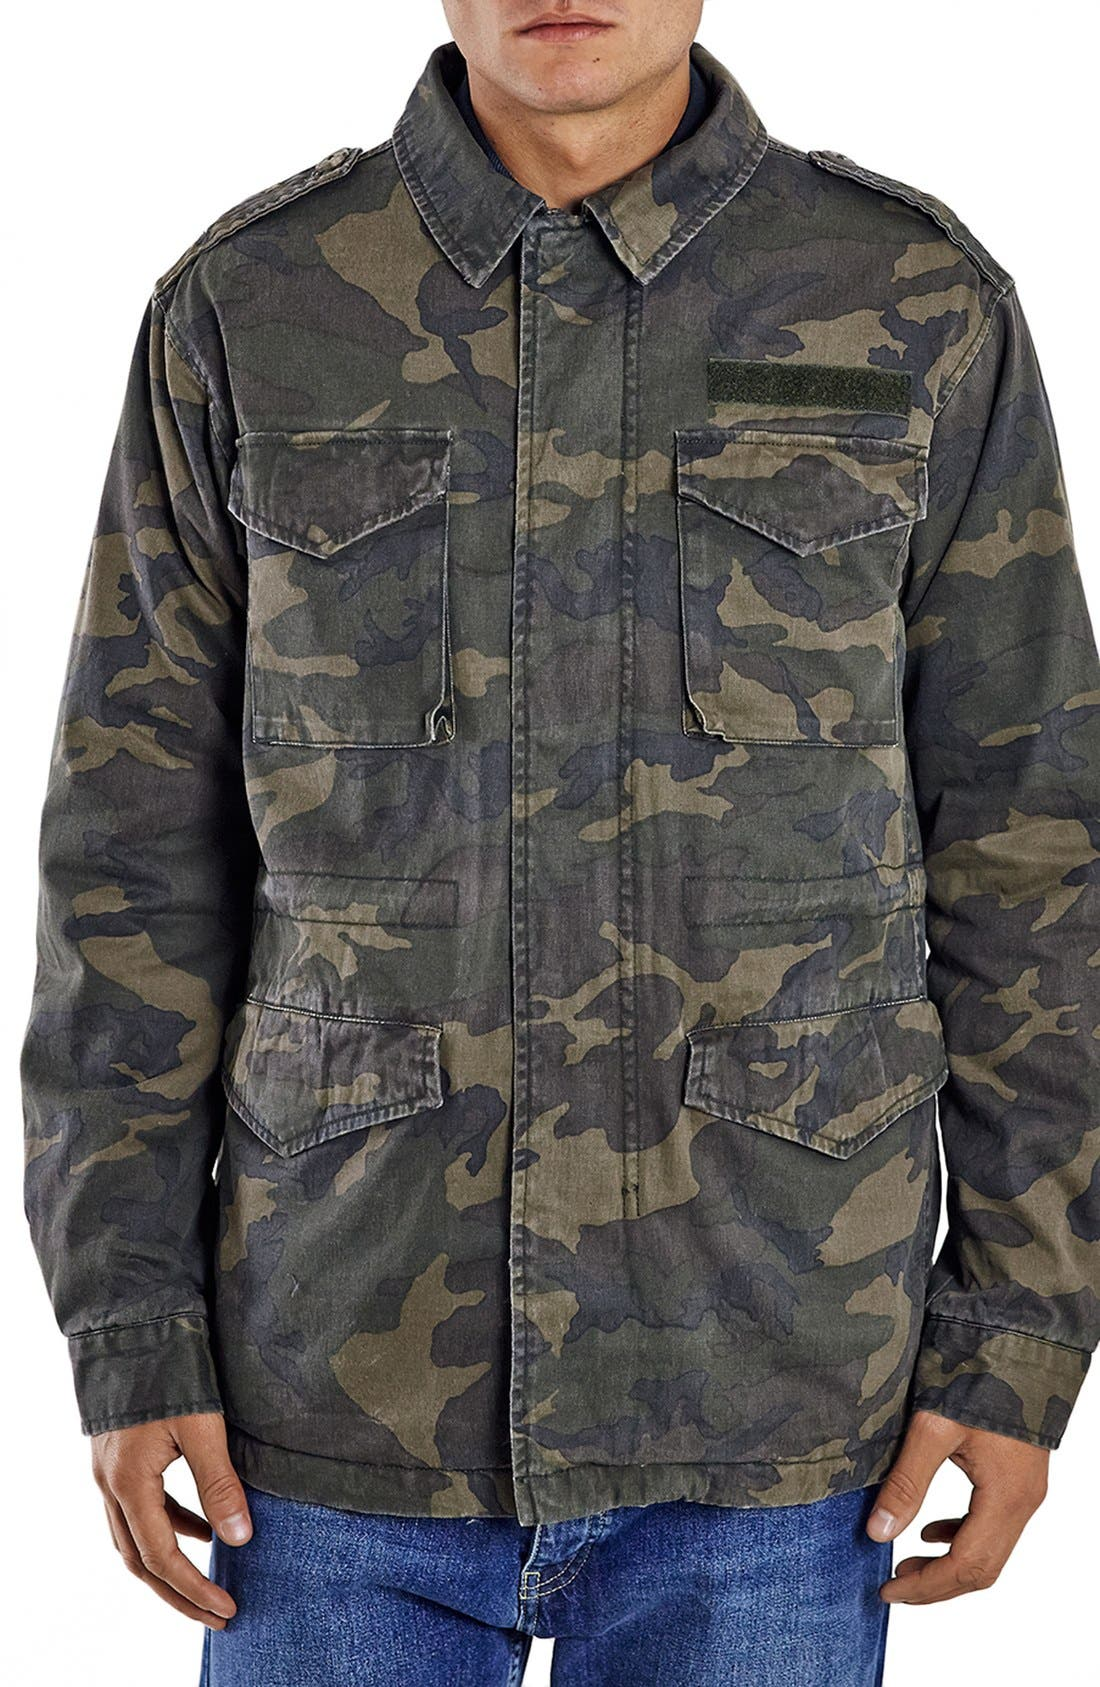 Topman Camo Print M-65 Field Jacket with Plush Lining